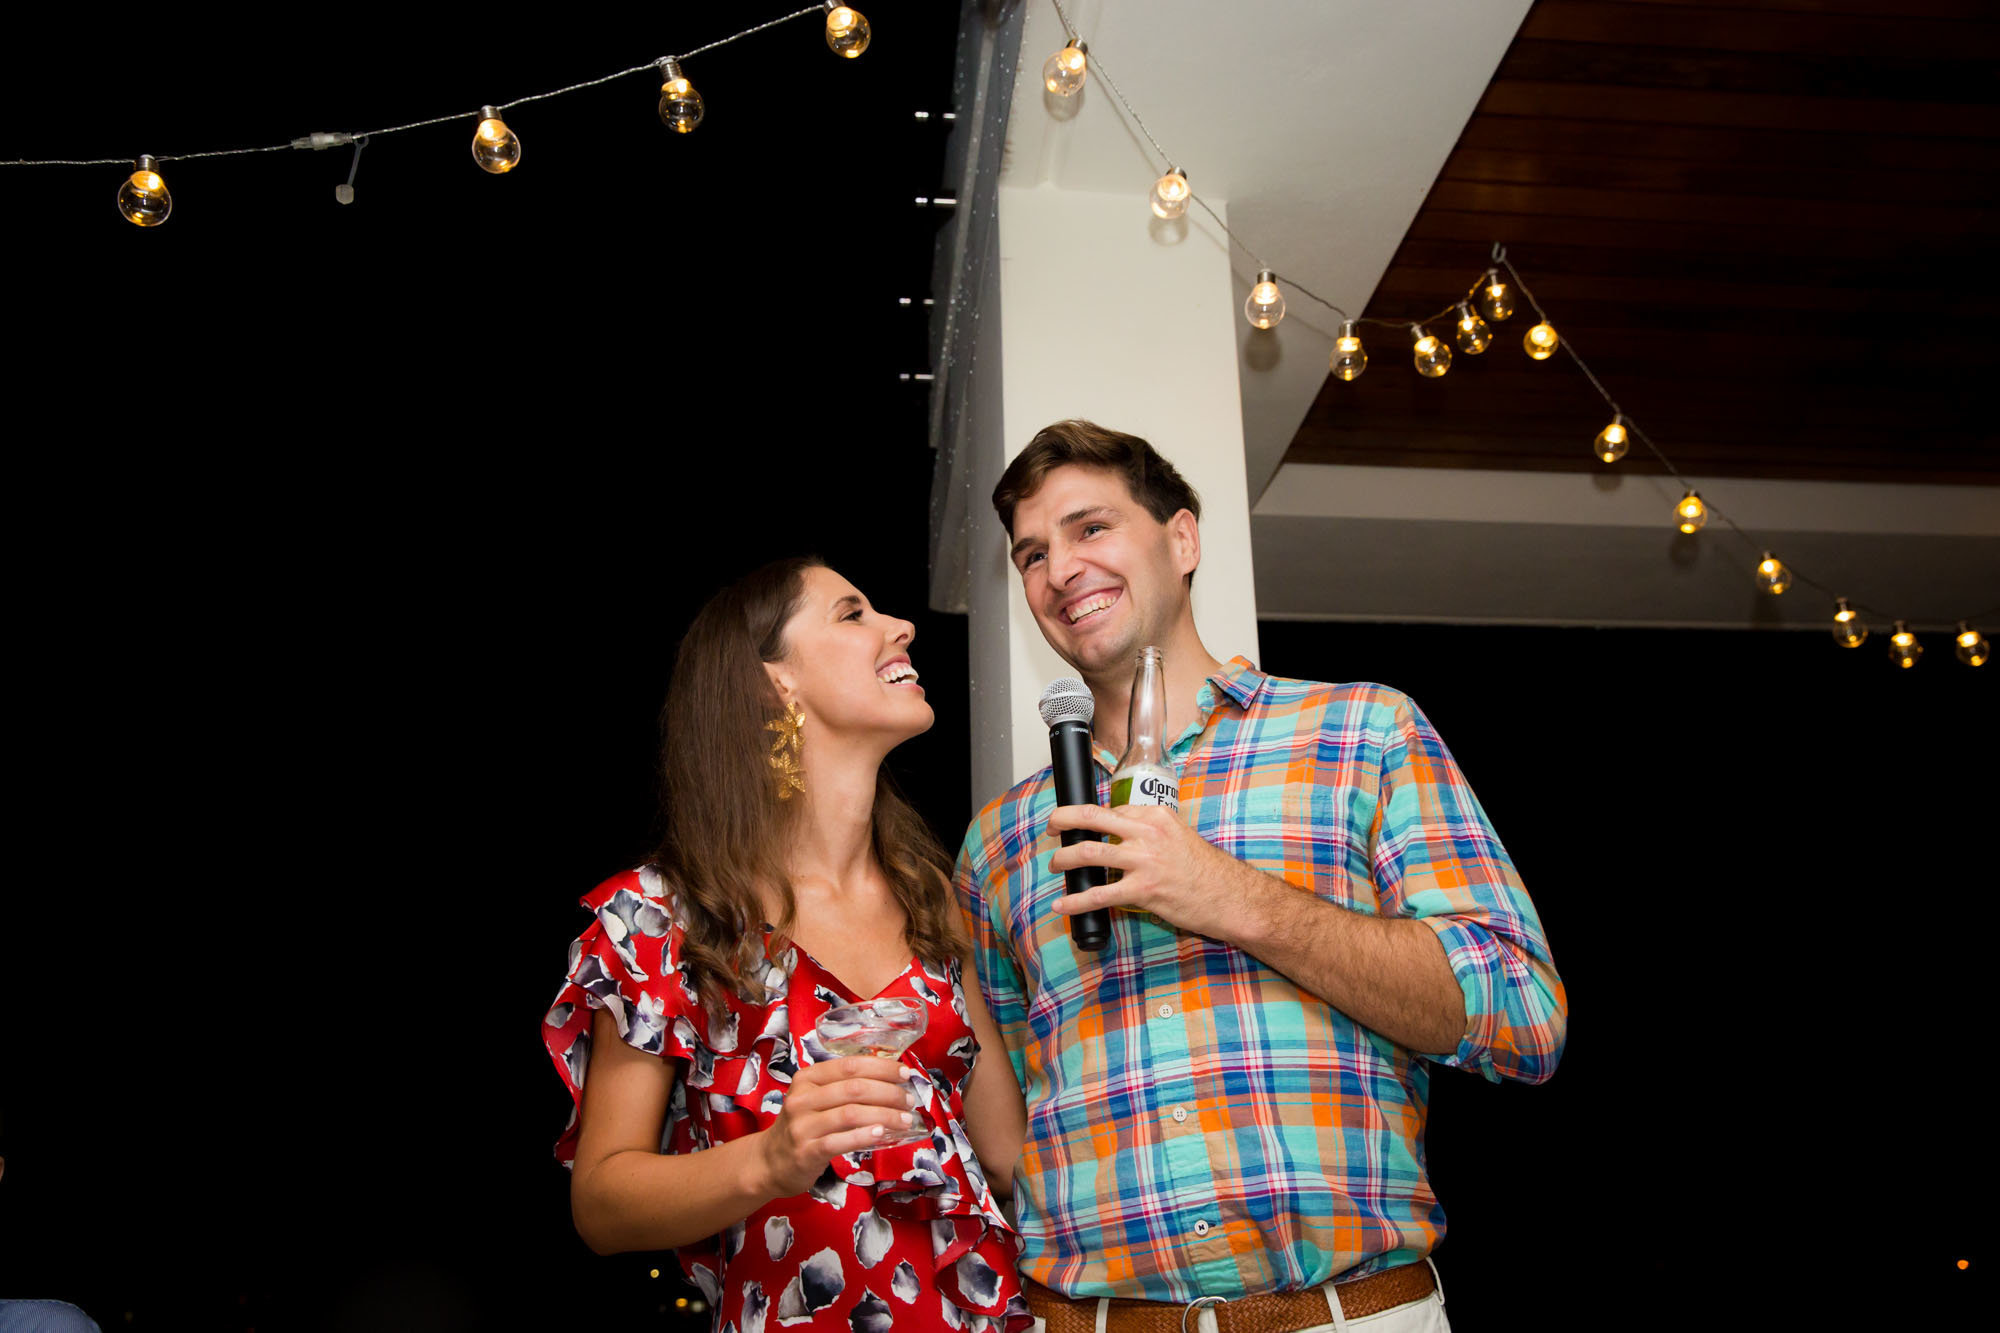 Emily_AL_EngagementParty_Photography_Chelmer_AnnaOsetroff-Highlights-Web-50